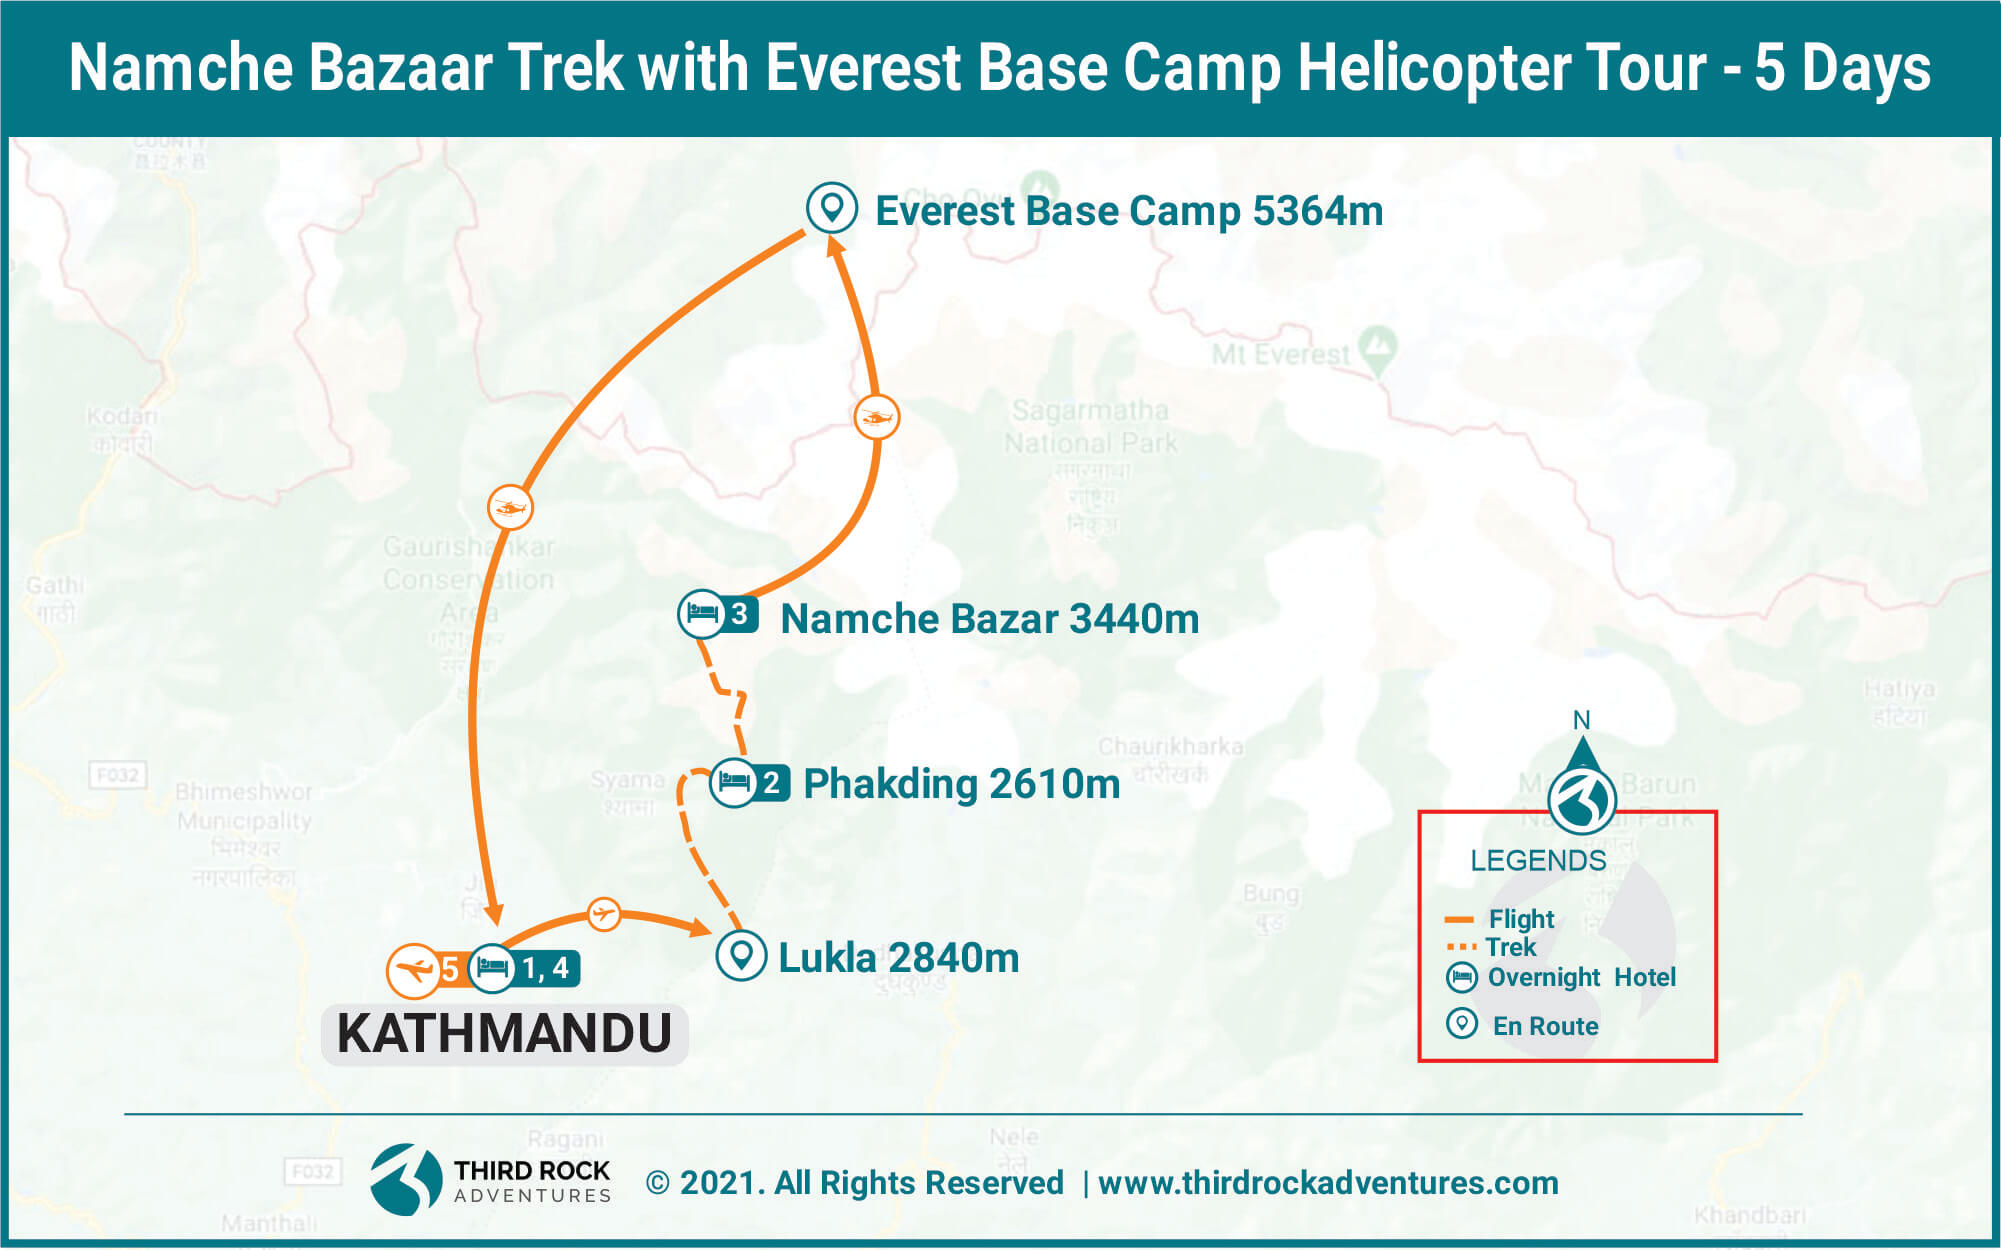 Namche Bazaar Trek Helicopter tour Route Map